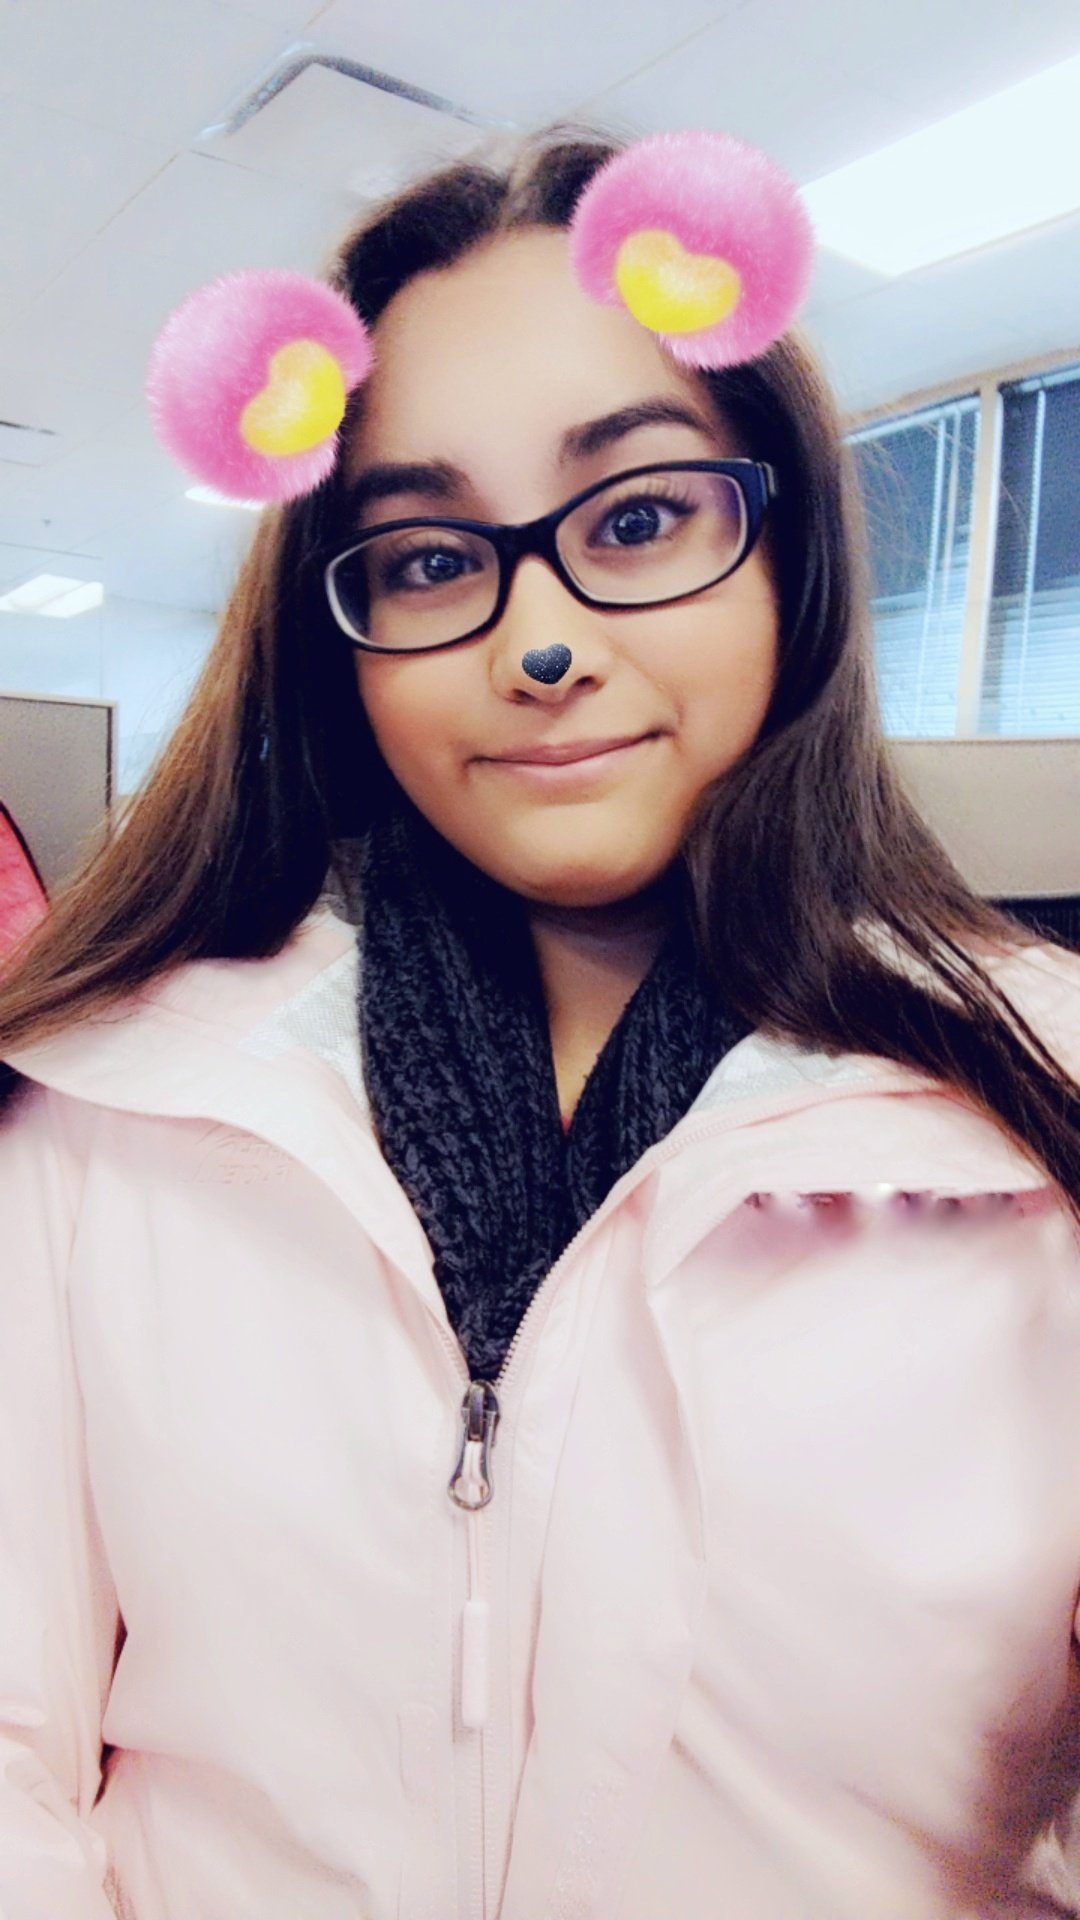 snapchat filter selfie north face jacket